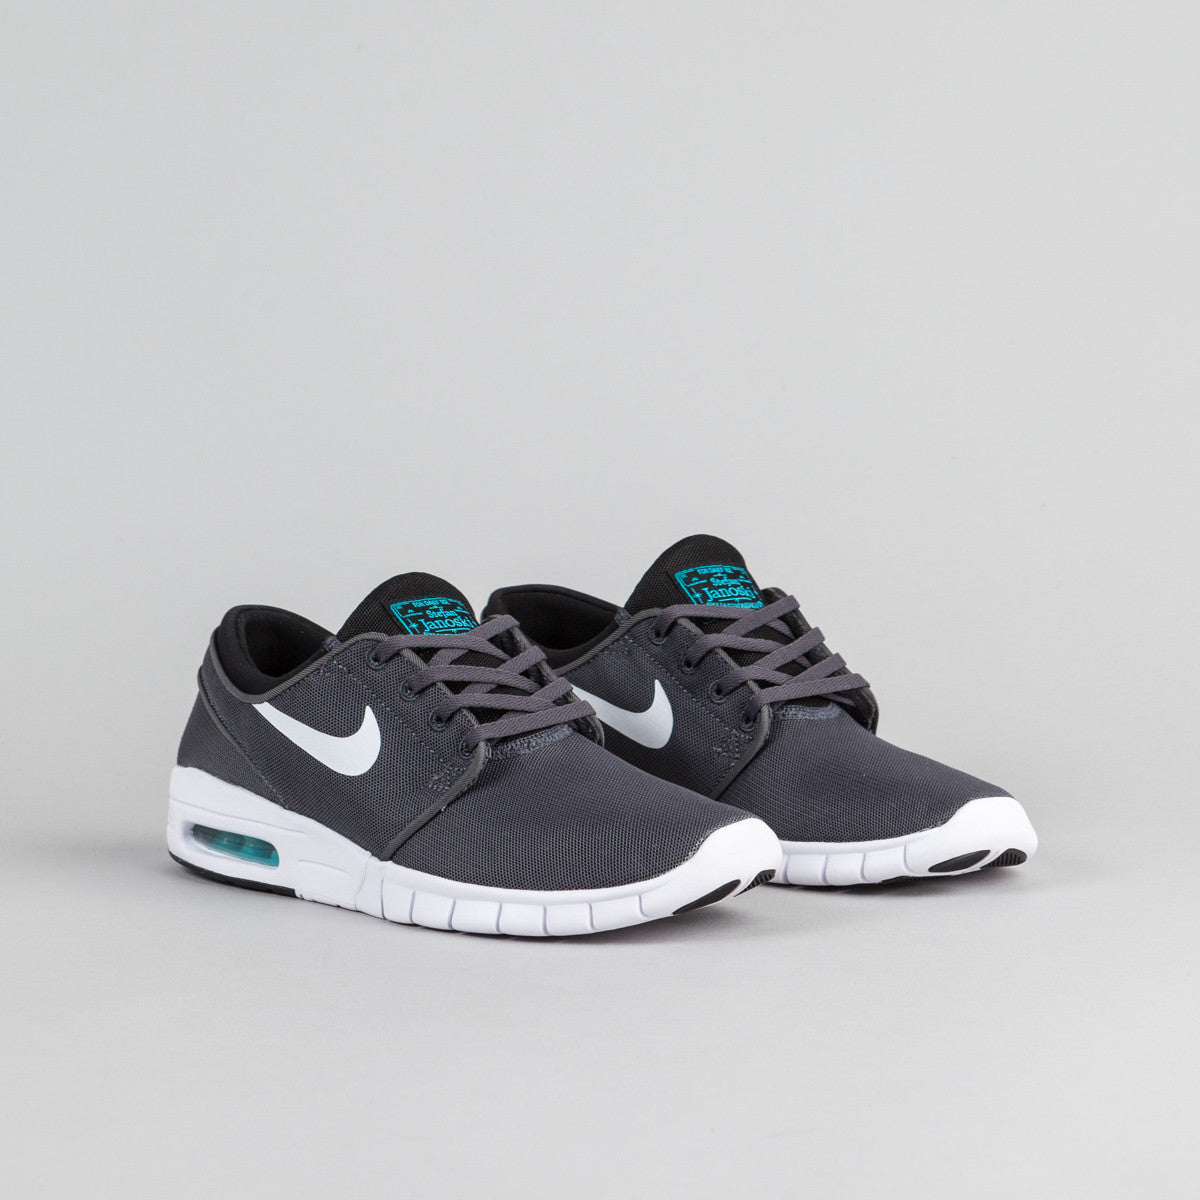 Nike SB Stefan Janoski Max Shoes - Dark Grey / White - Black - Gamma Blue